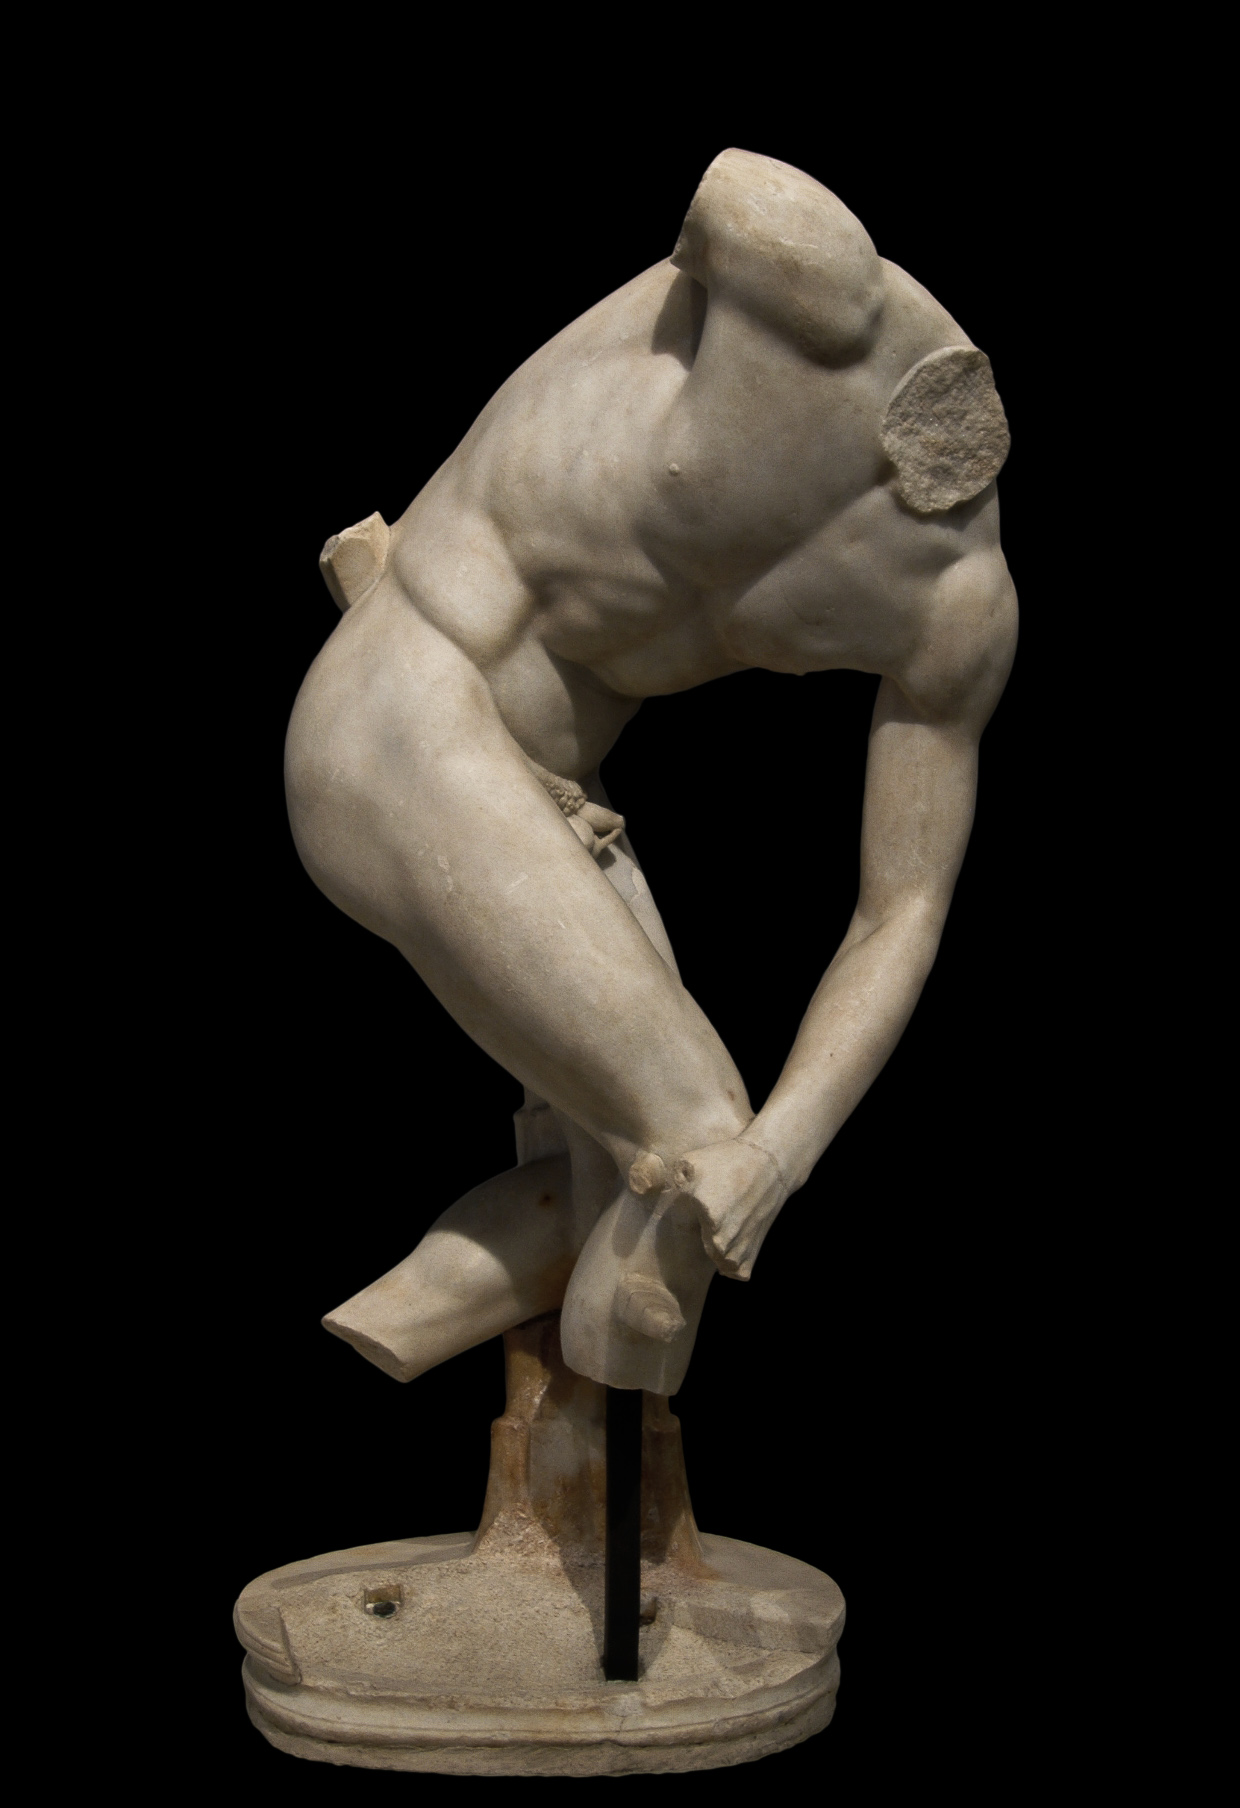 Discobolus of Castelporziano. Parian marble. Roman copy of the 2nd cent. CE after a bronze Greek original by Myron of the mid-5th cent. BCE. Inv. No. 56039. Rome, Roman National Museum, Palazzo Massimo alle Terme